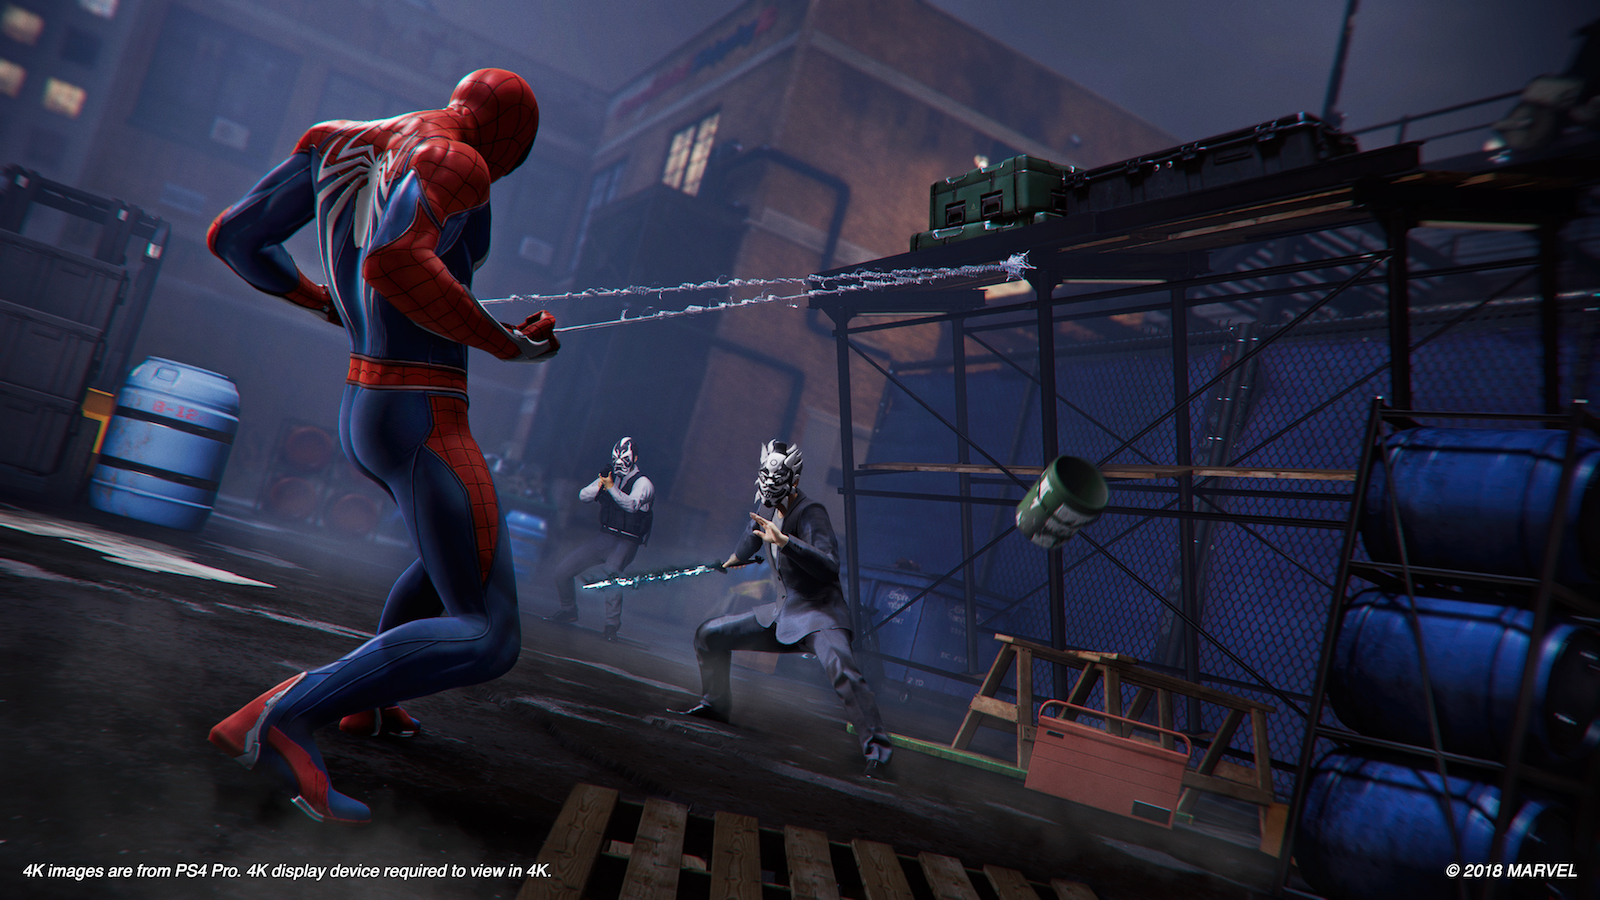 Spider man game release date in Perth